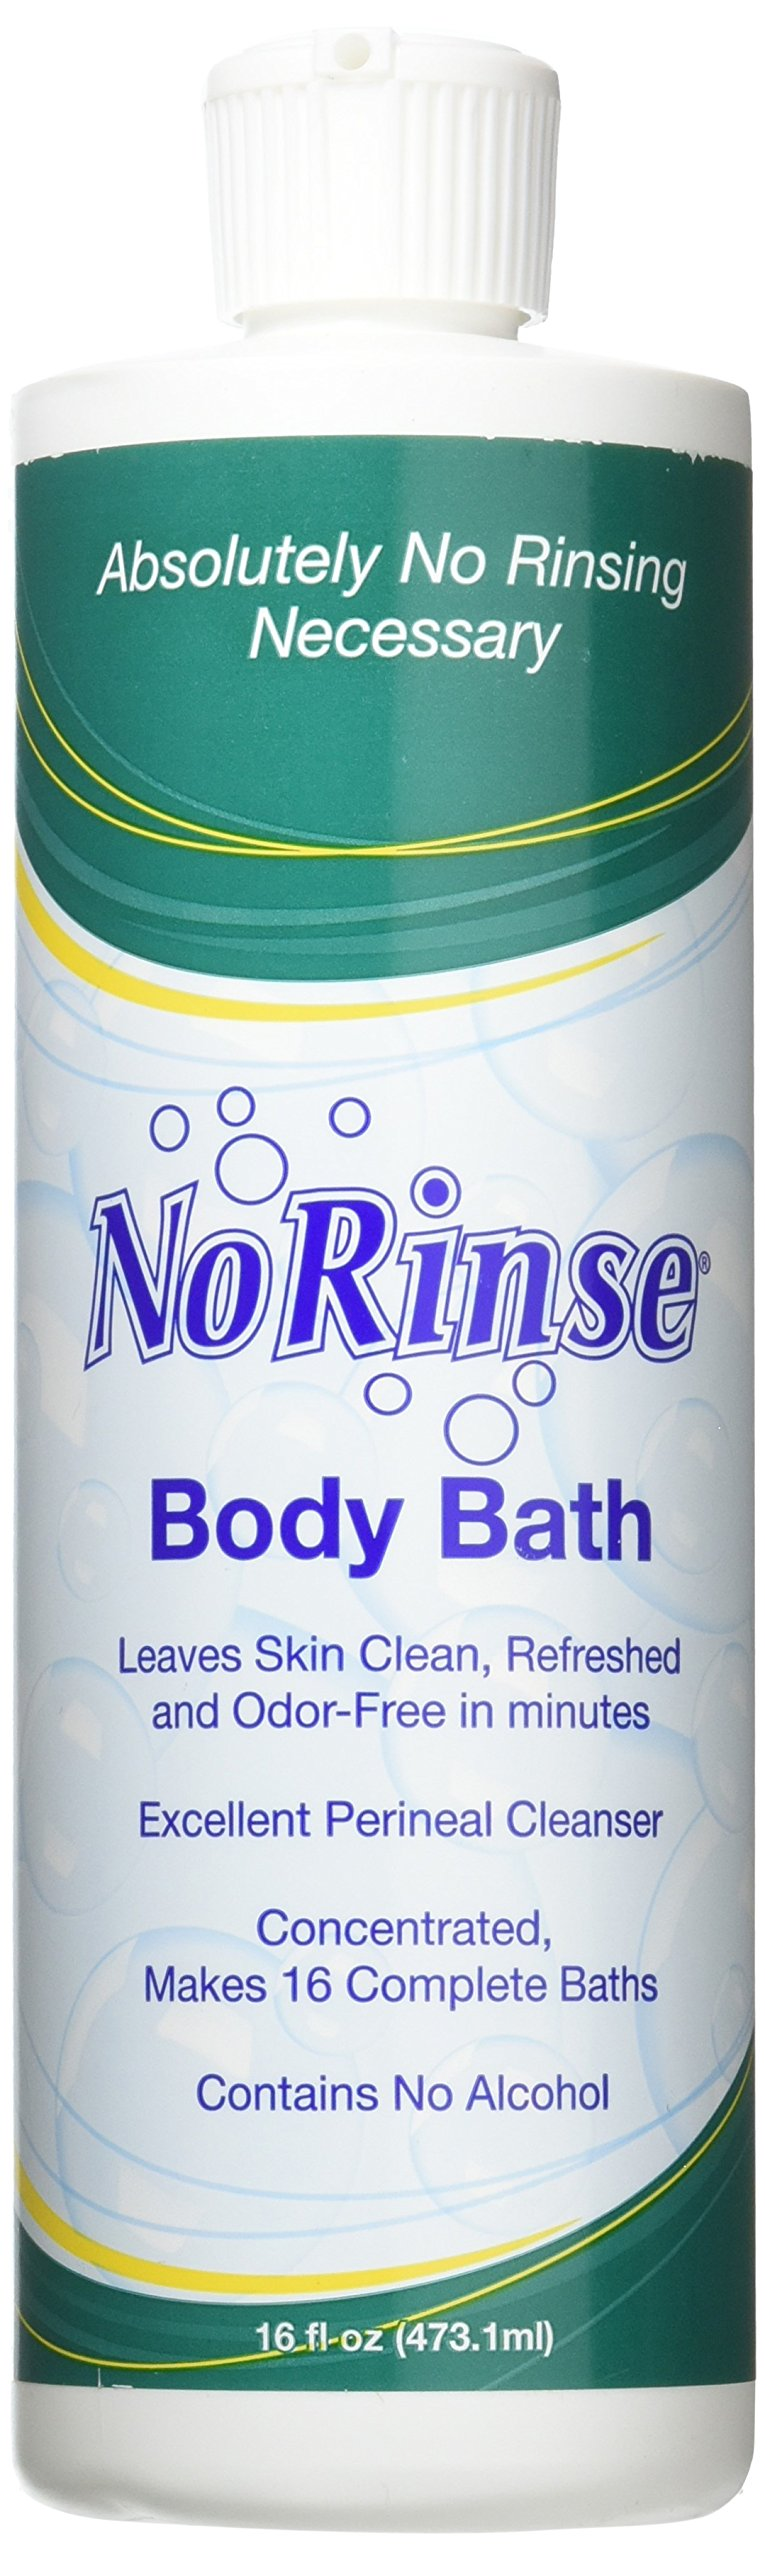 Special 1 Pack of 3 - No Rinse Body Bath 16 oz bottles - NRN910 by Med-Choice